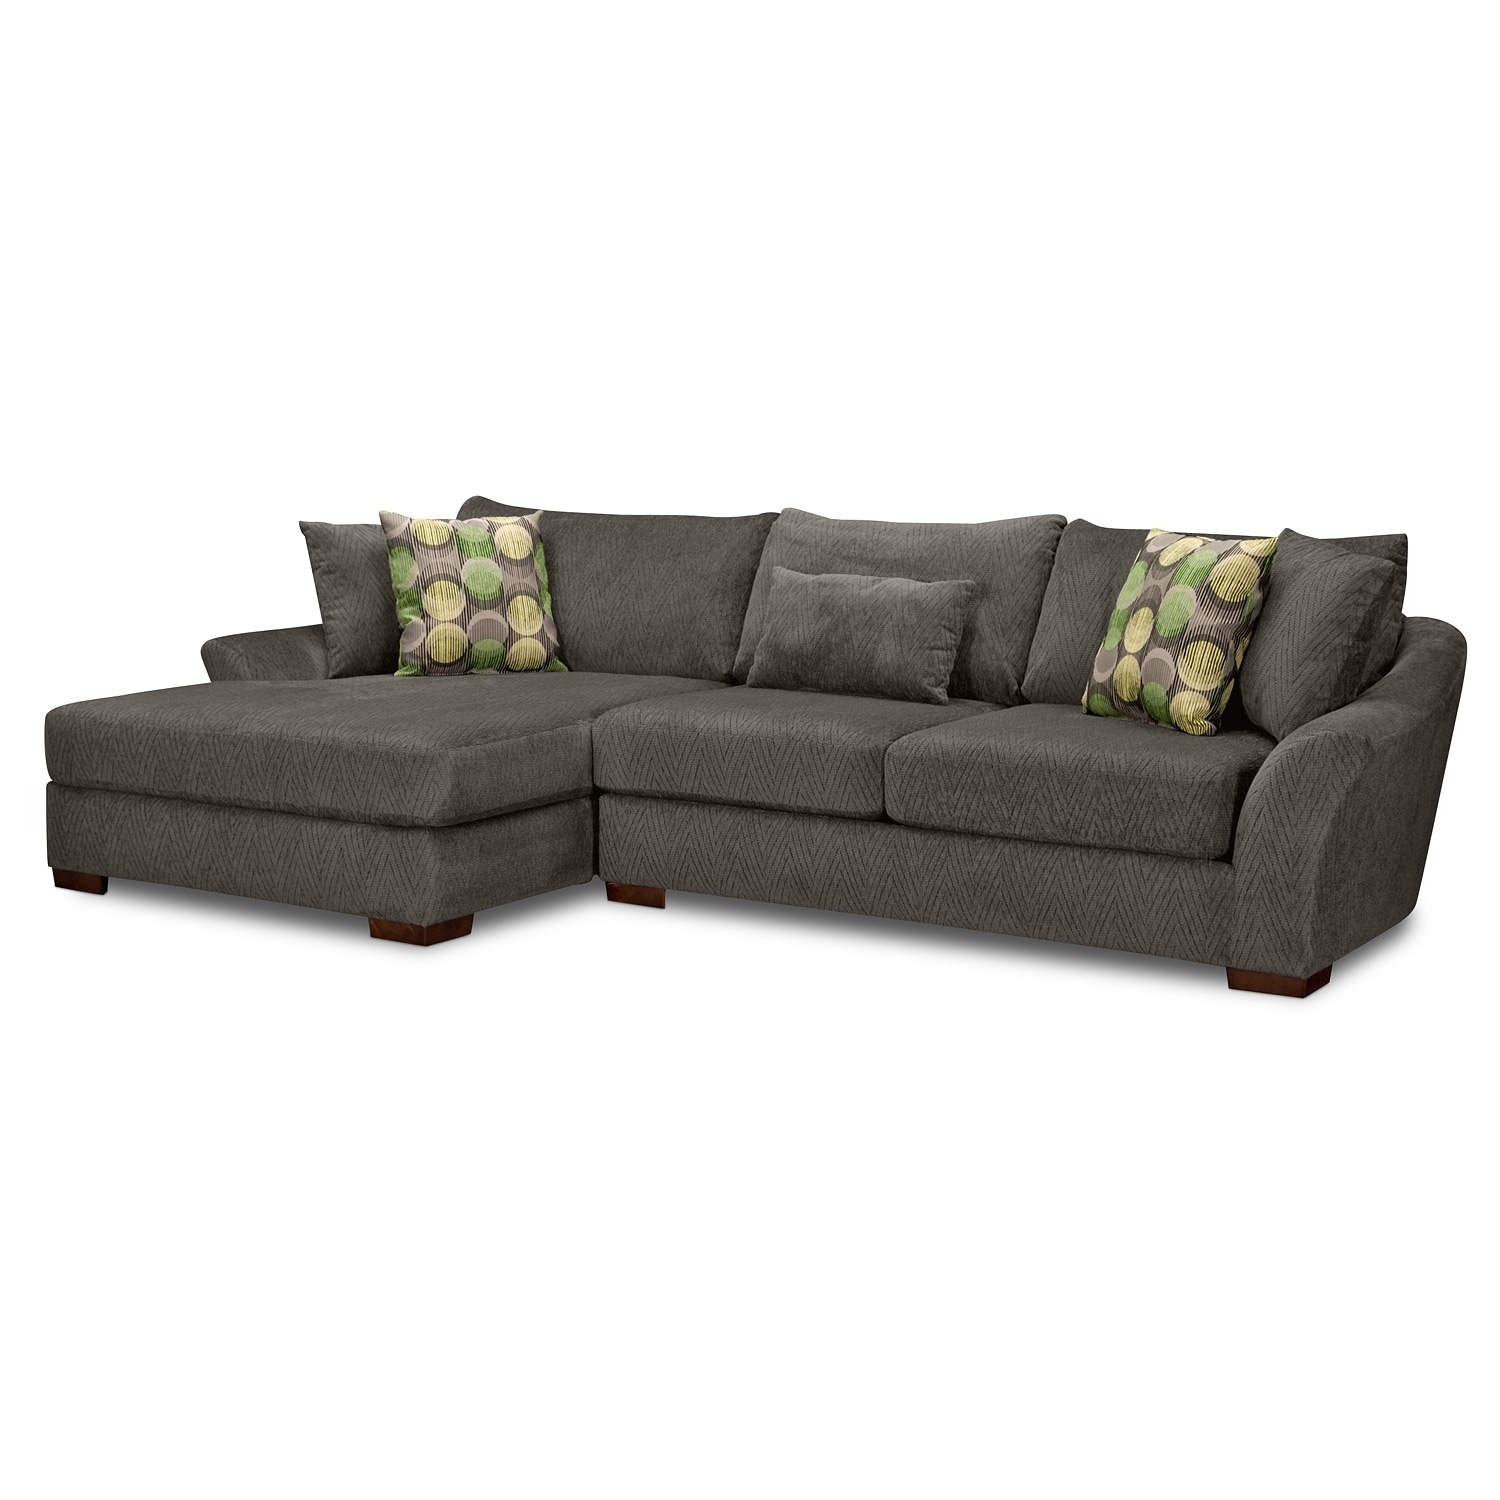 Living Room Furniture - Orleans Gray 2 Pc. Sectional